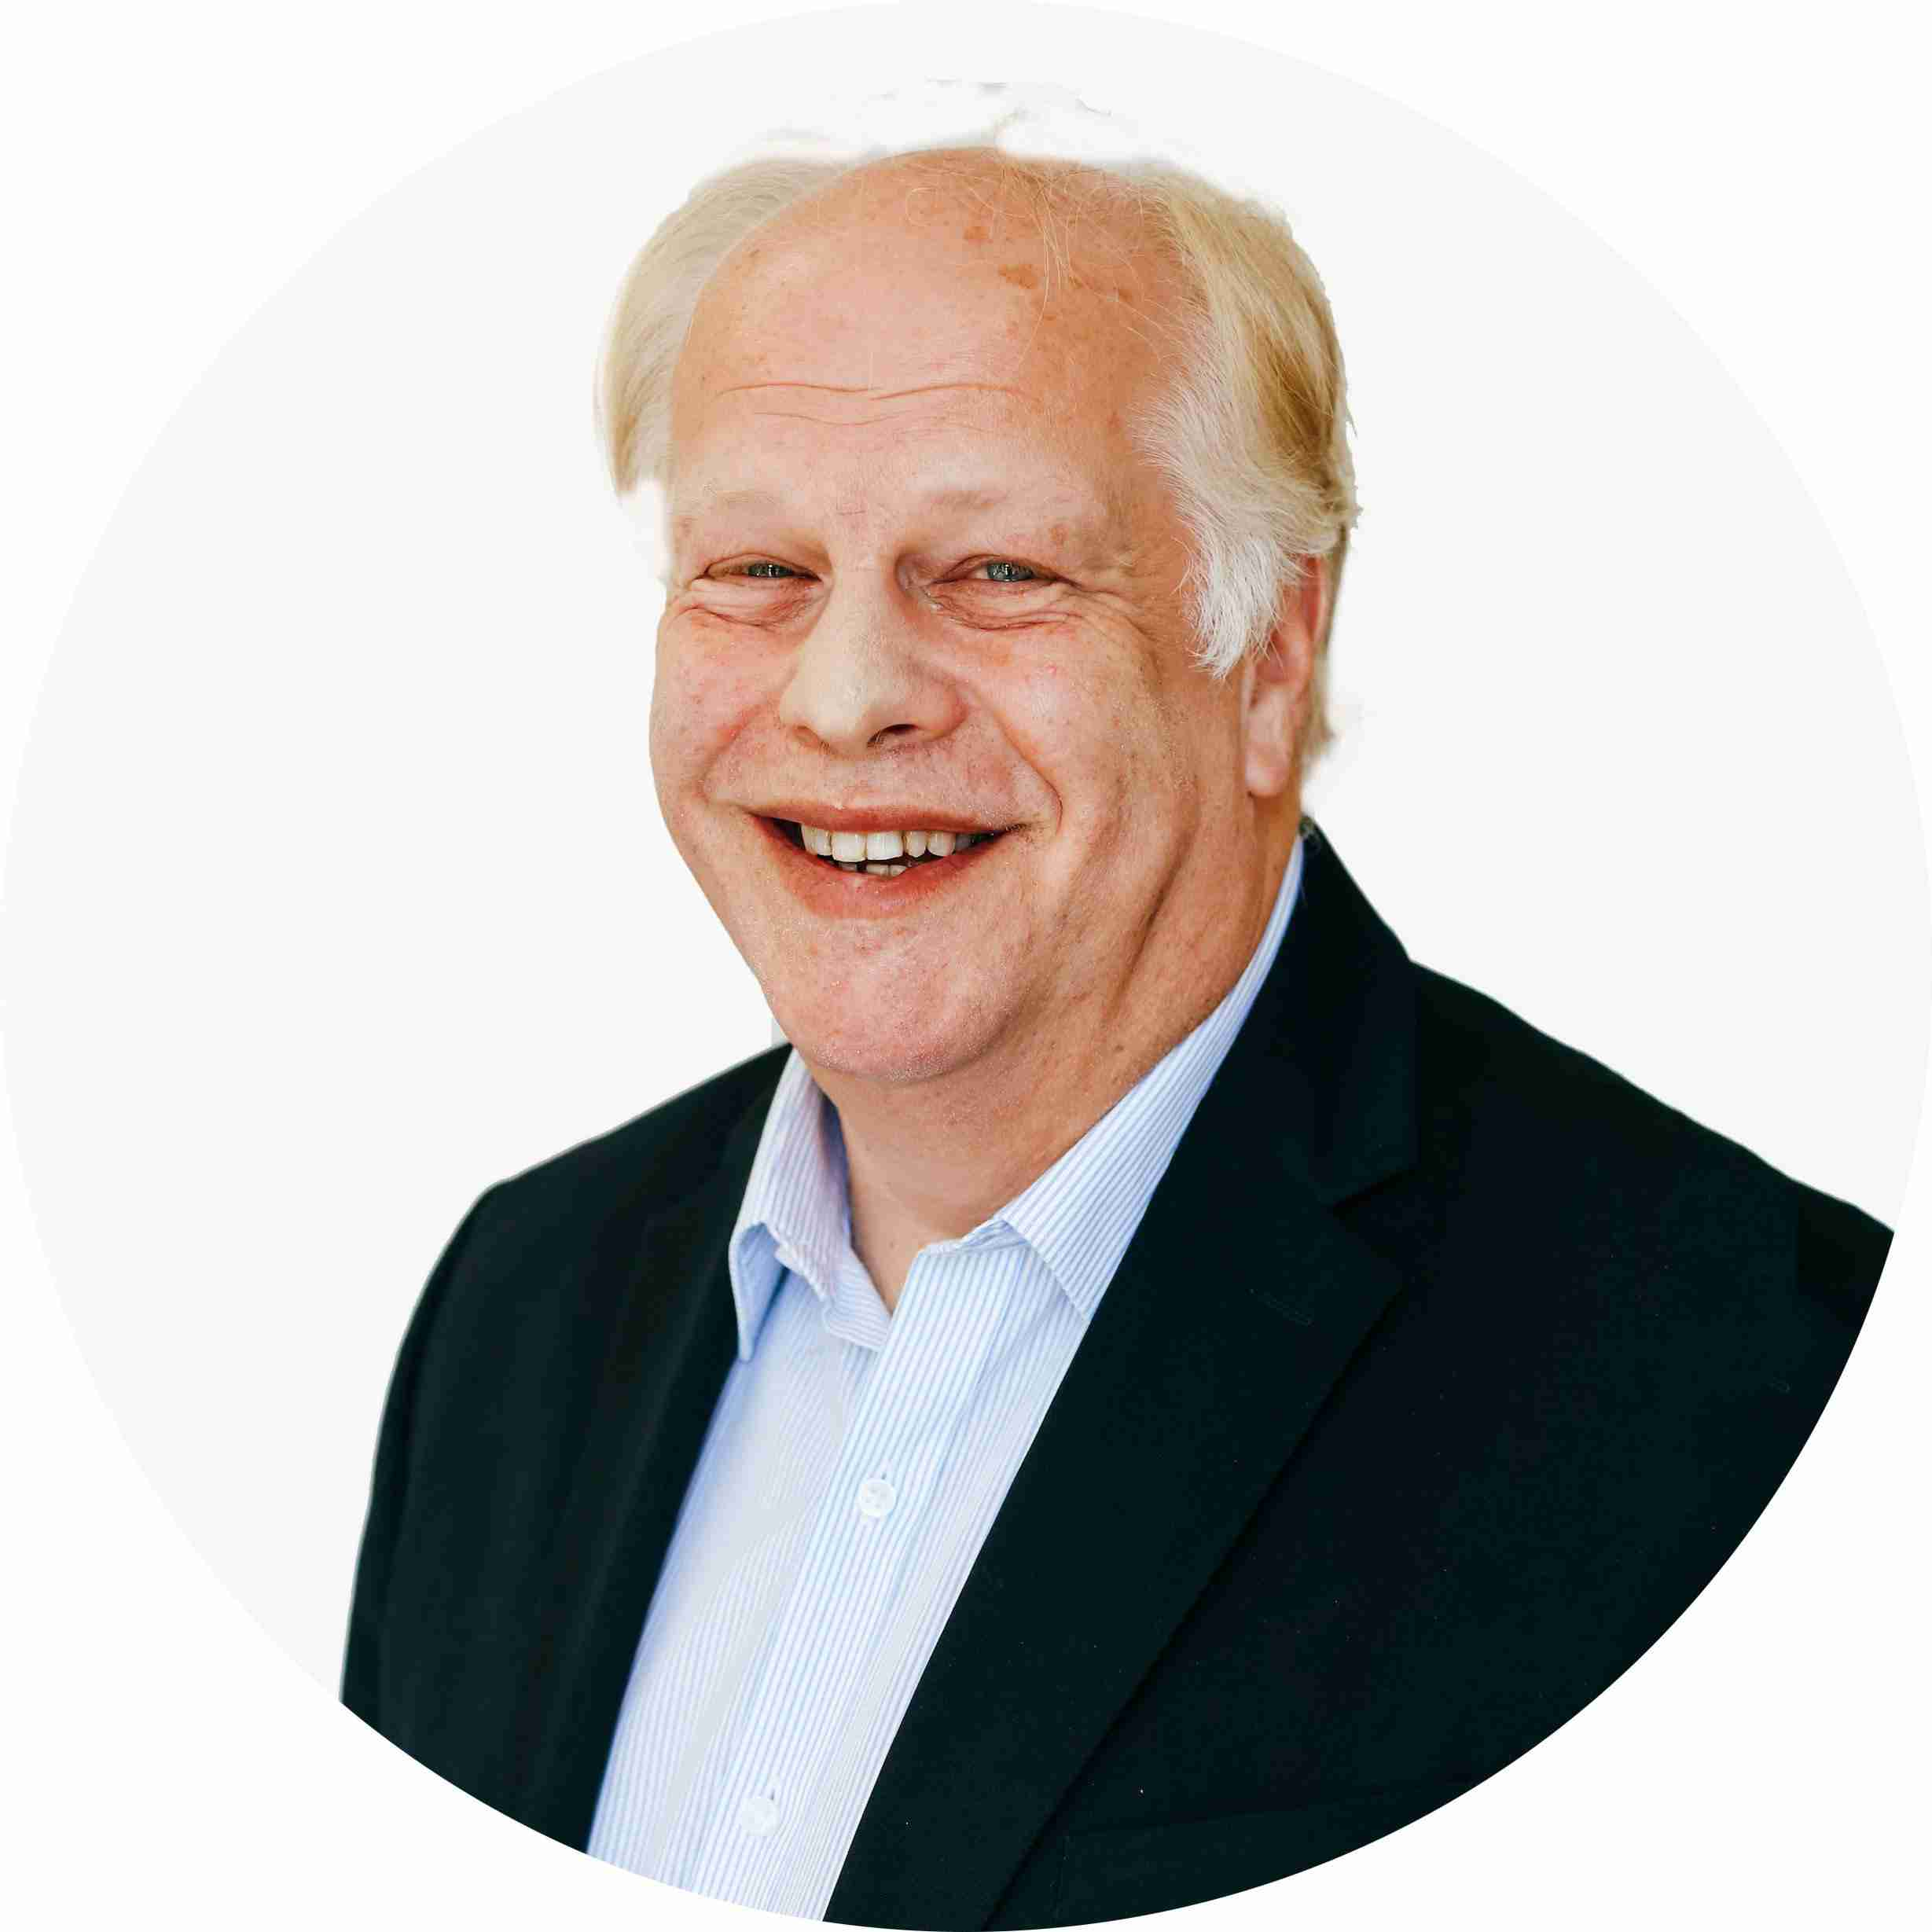 This image is a headshot of Dr Jeffrey Tobias, an expert in innovation, design thinking, customer centricity, customer experience, entrepreneurship, lean startup and more.